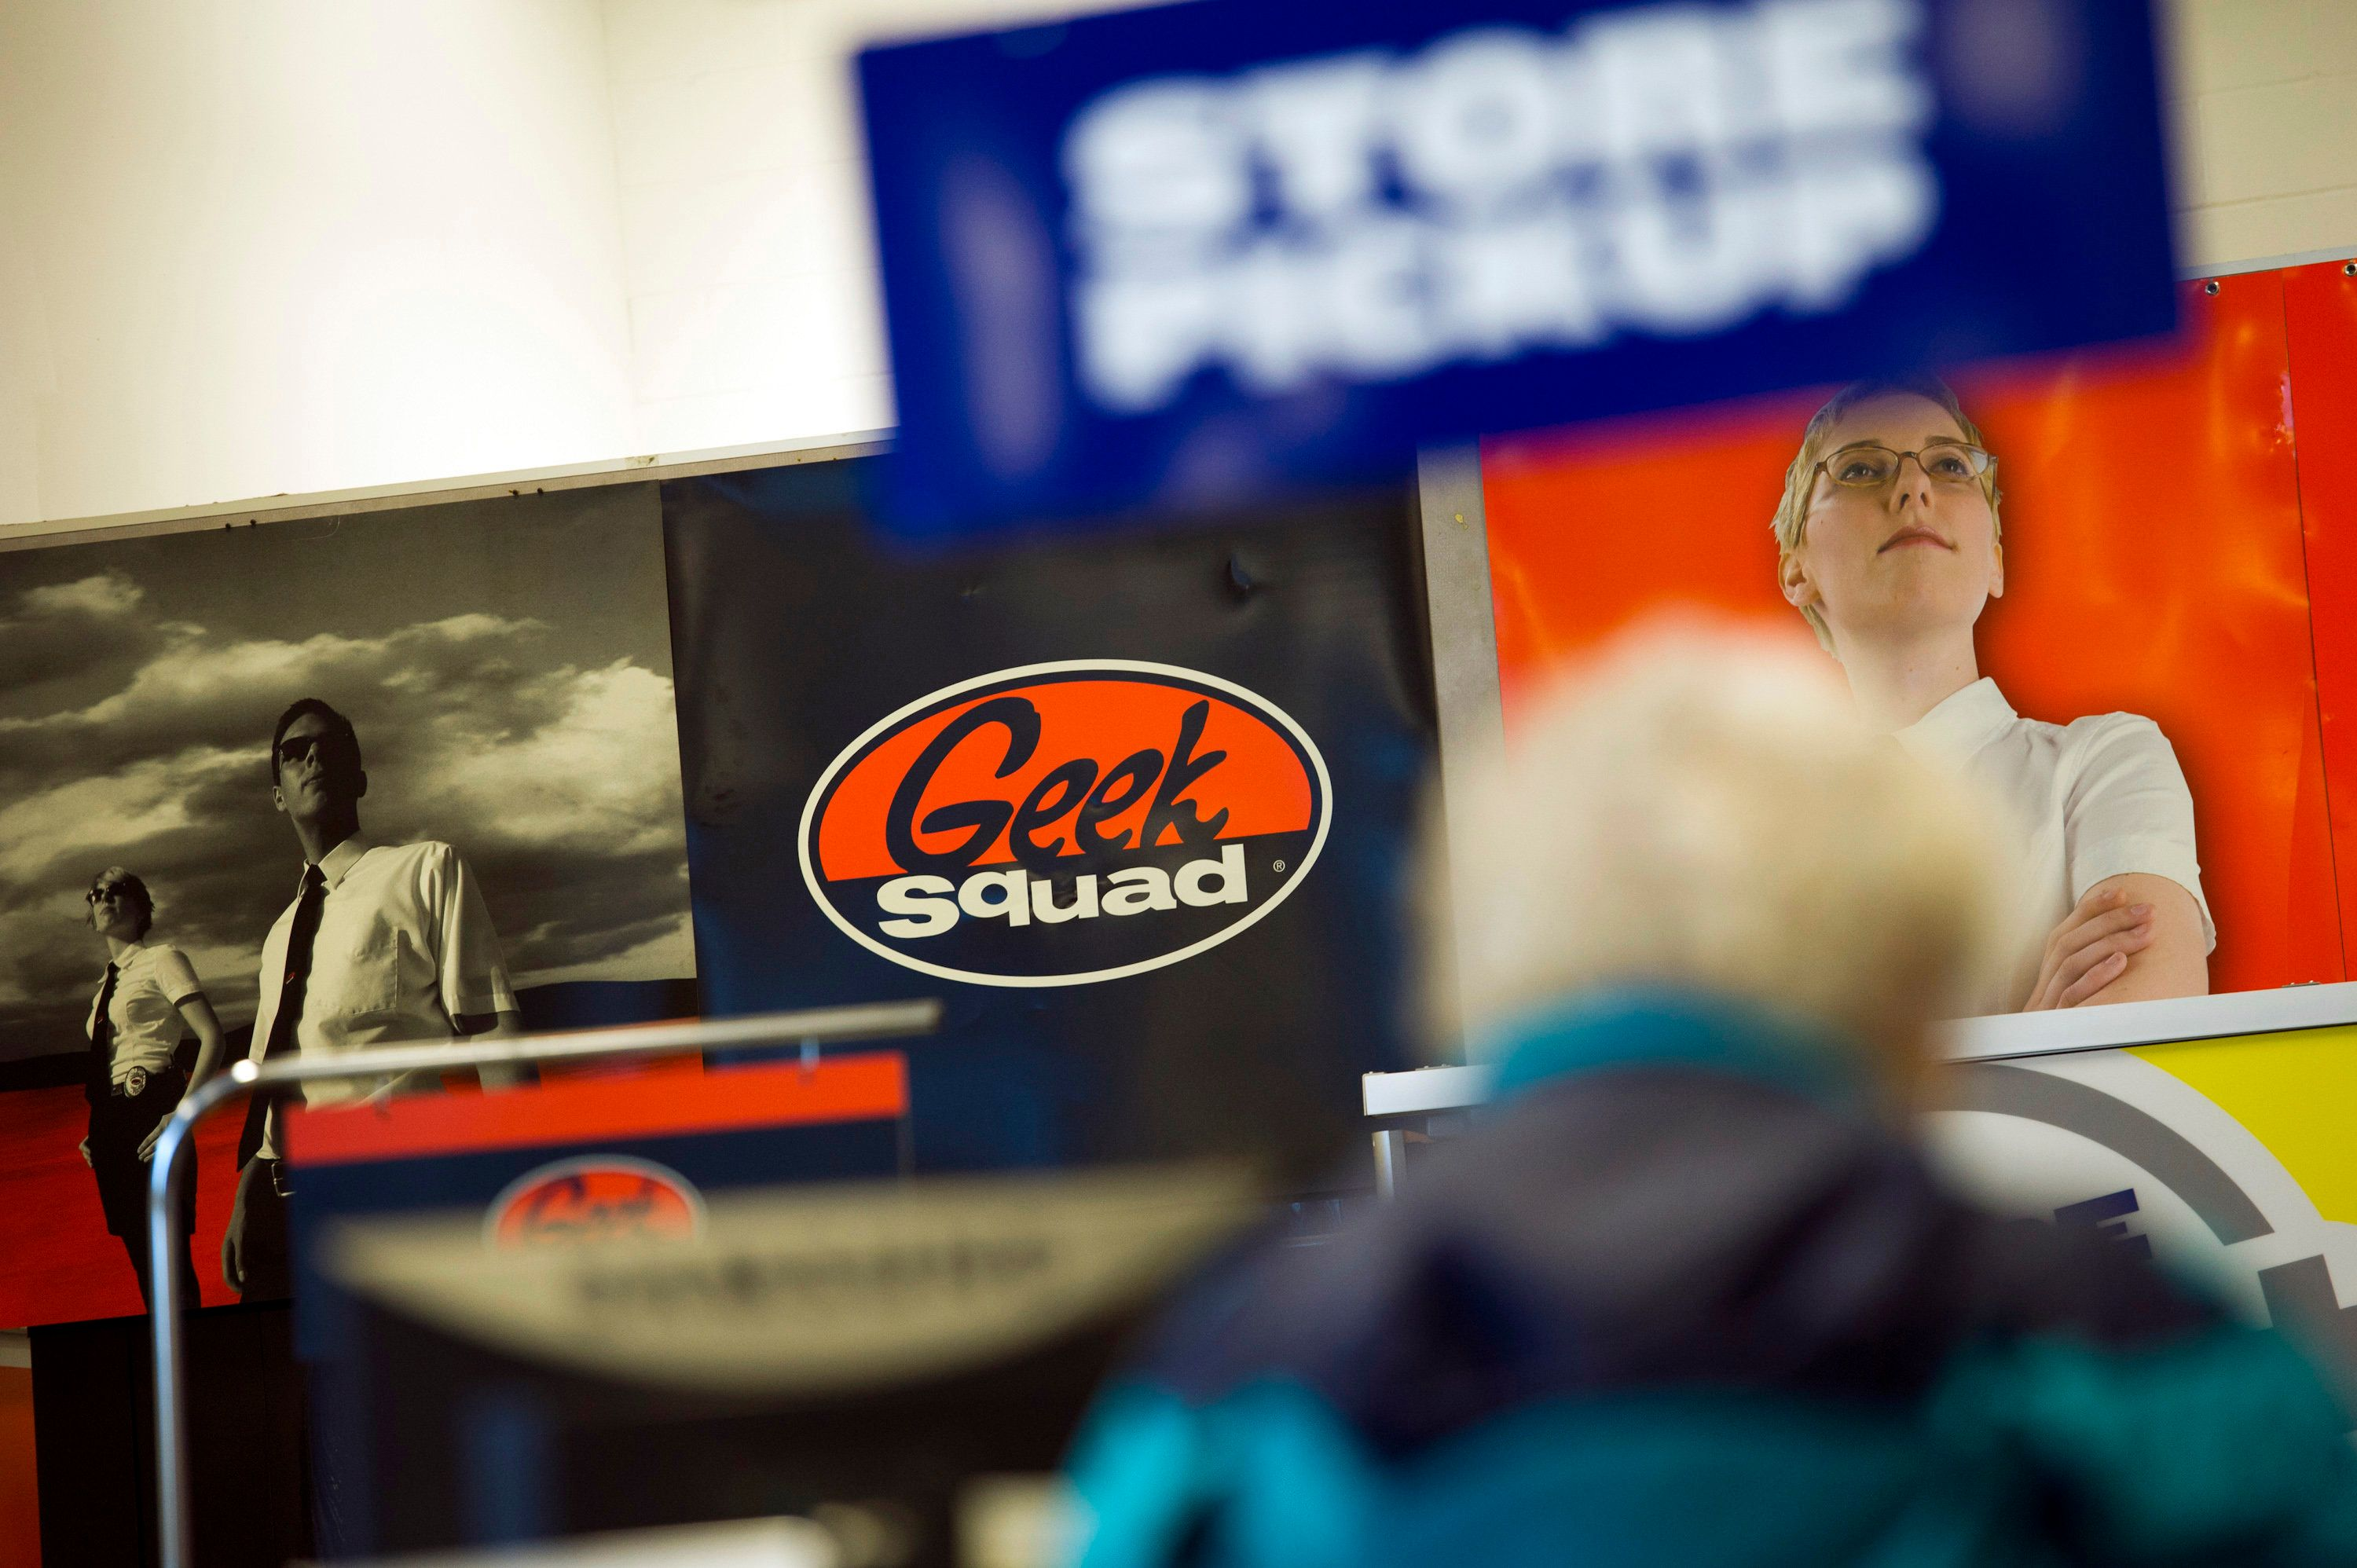 A Geek Squad advertisement is displayed inside a Best Buy Co. store in Emeryville, California, U.S., on Tuesday, March 27, 2012. Best Buy Co., the electronics, appliance and entertainment retailer, is expected to release quarterly earnings on March 29. Photographer: David Paul Morris/Bloomberg via Getty Images